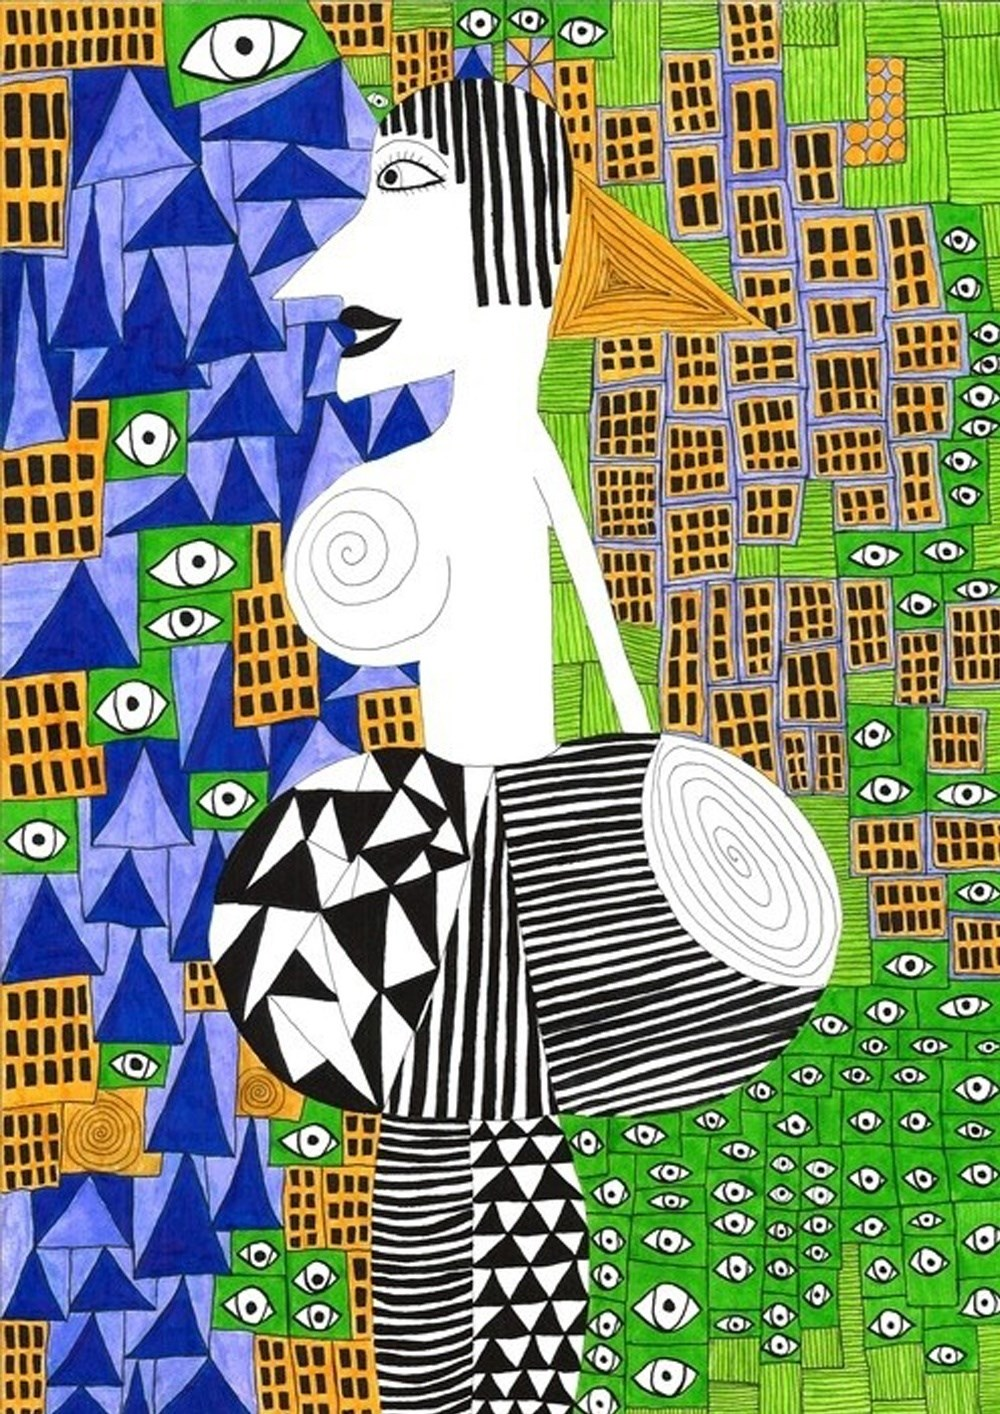 City Woman, original Abstract Aquatint Drawing and Illustration by Inês Peres